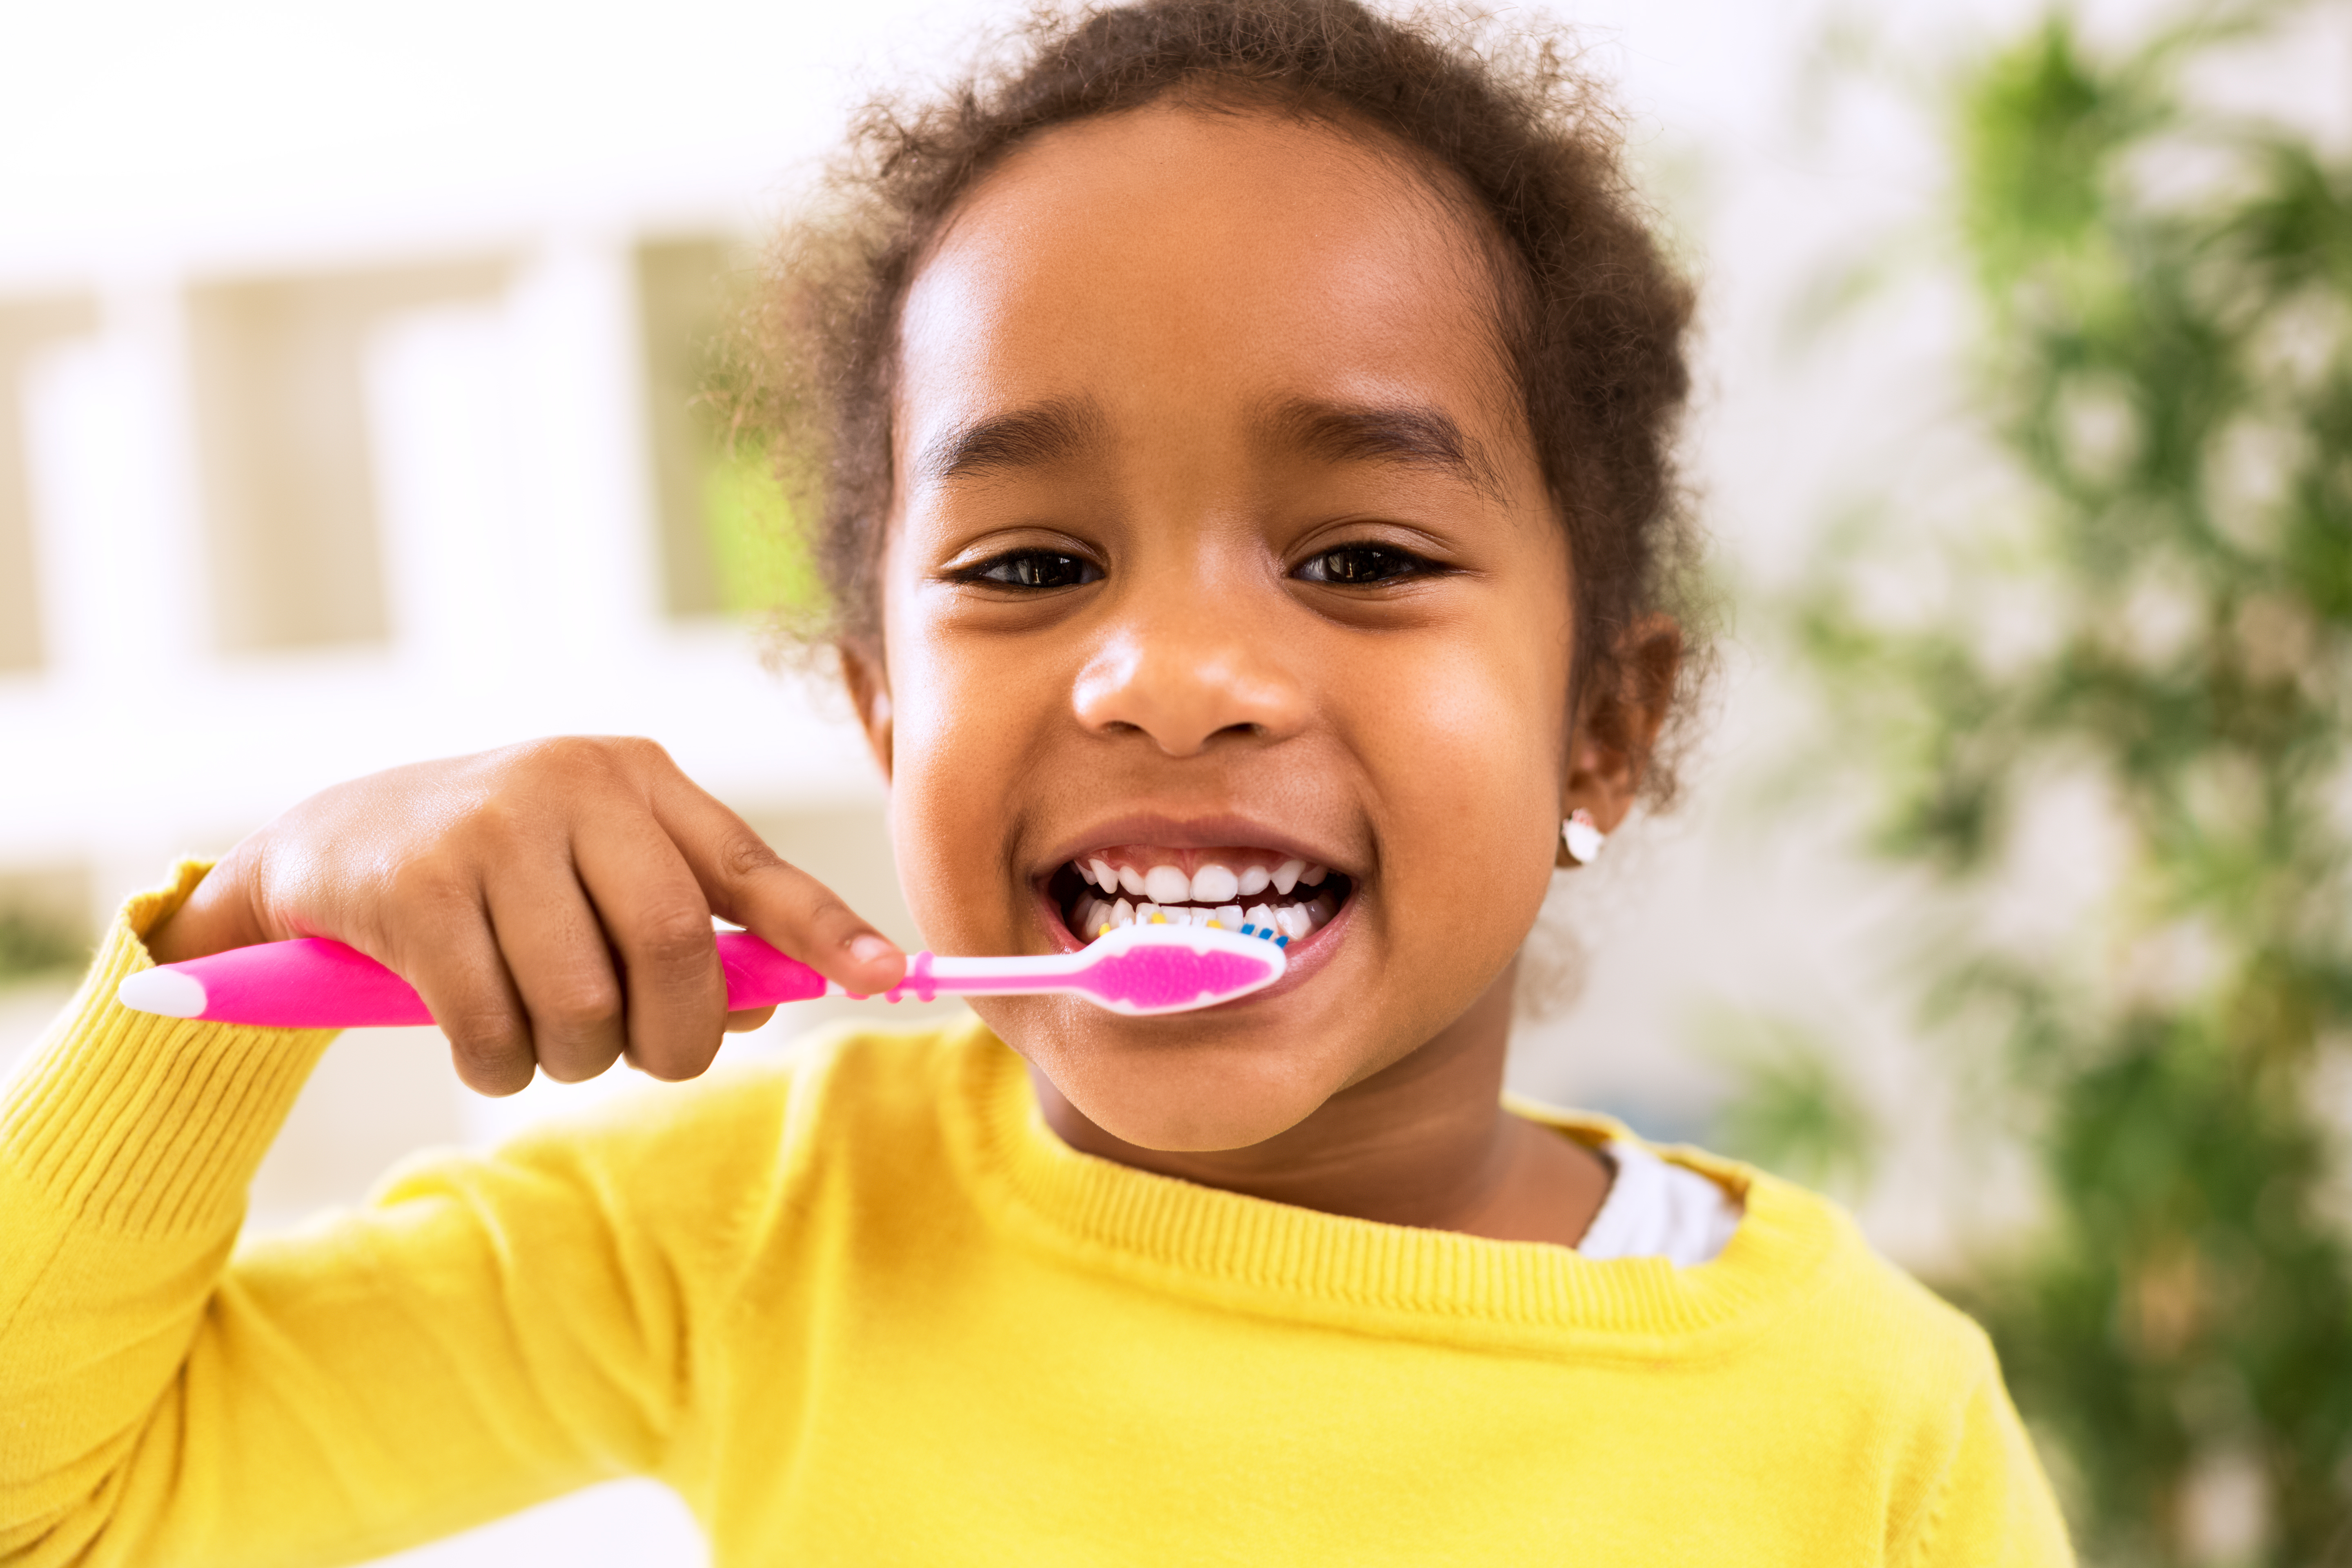 jersey city pediatric dentistry how to brush your teeth z brushing